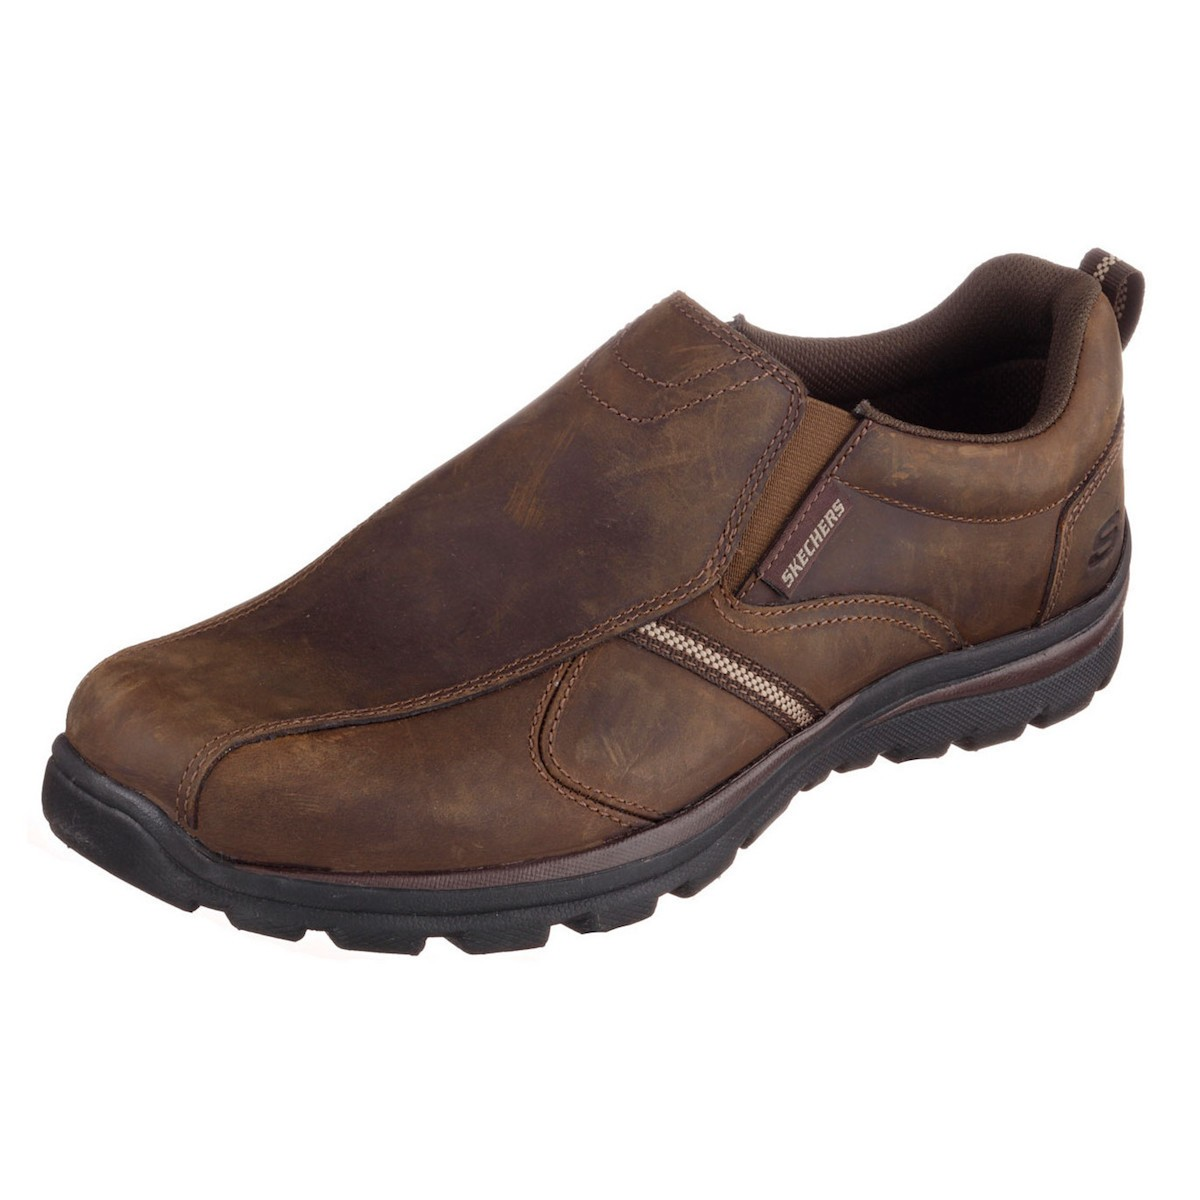 Sketchers Mens Shoes With Leather Upper